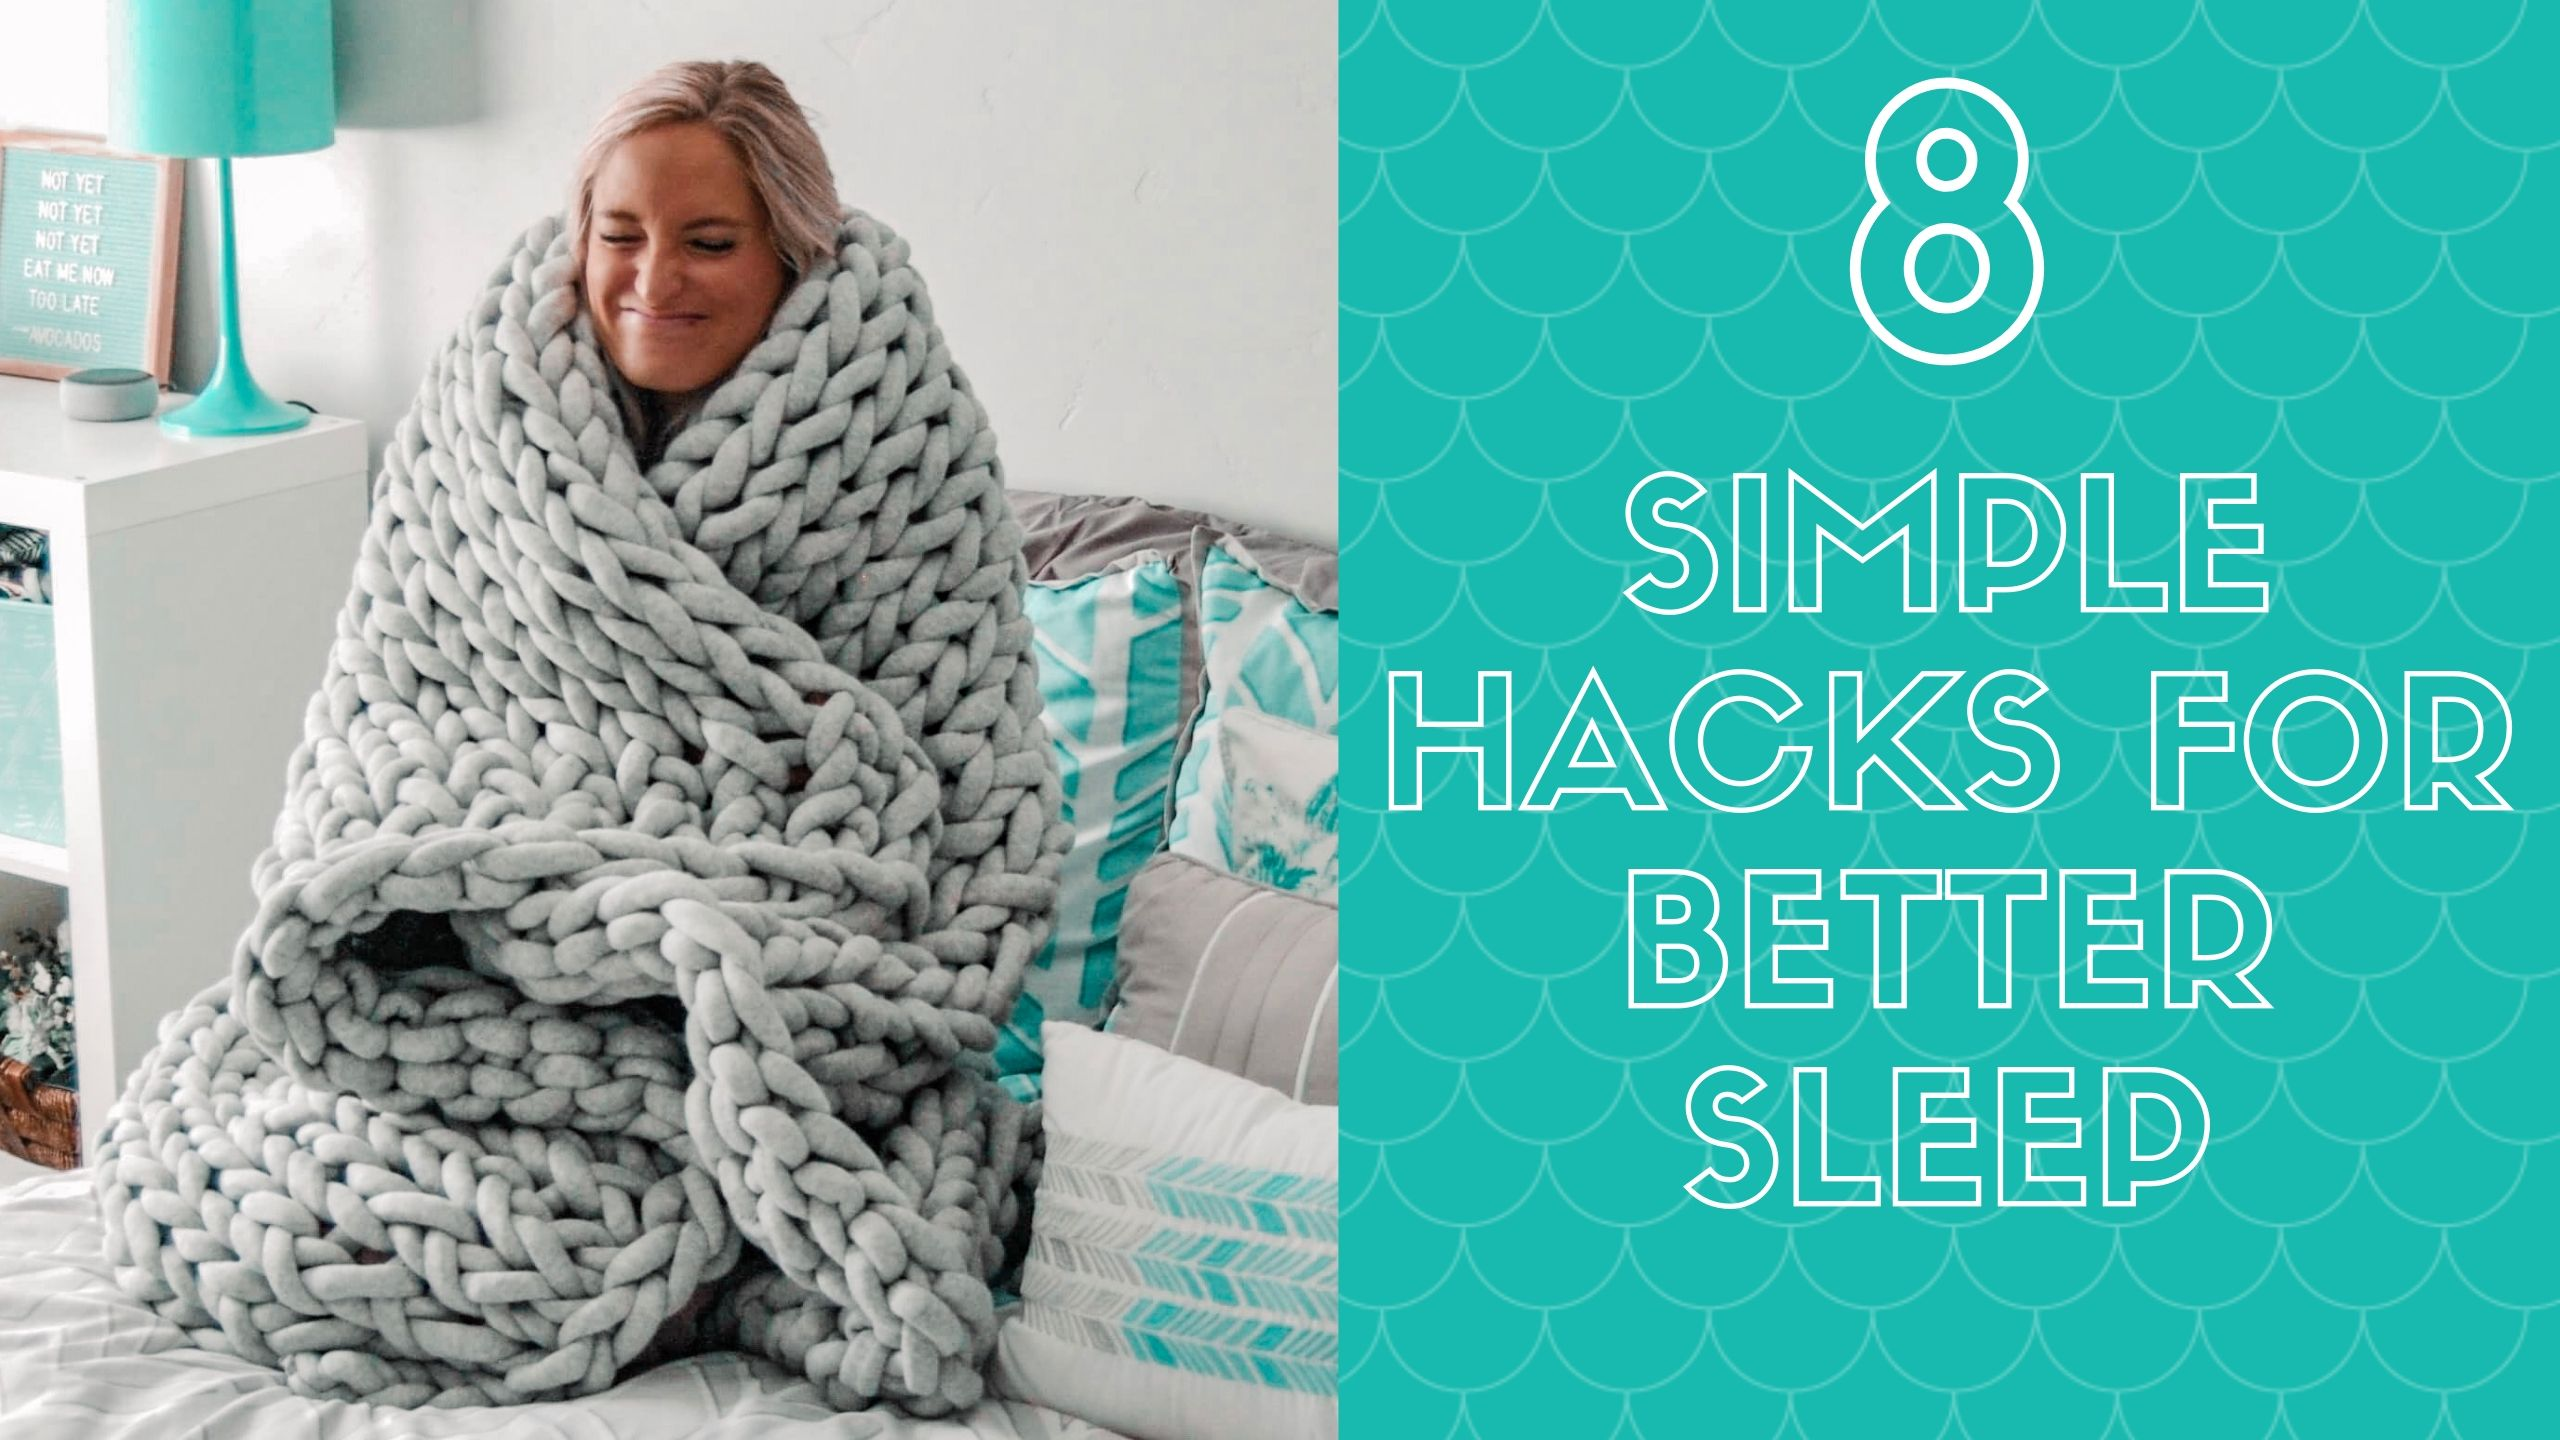 8 simple hacks for better sleep (1)